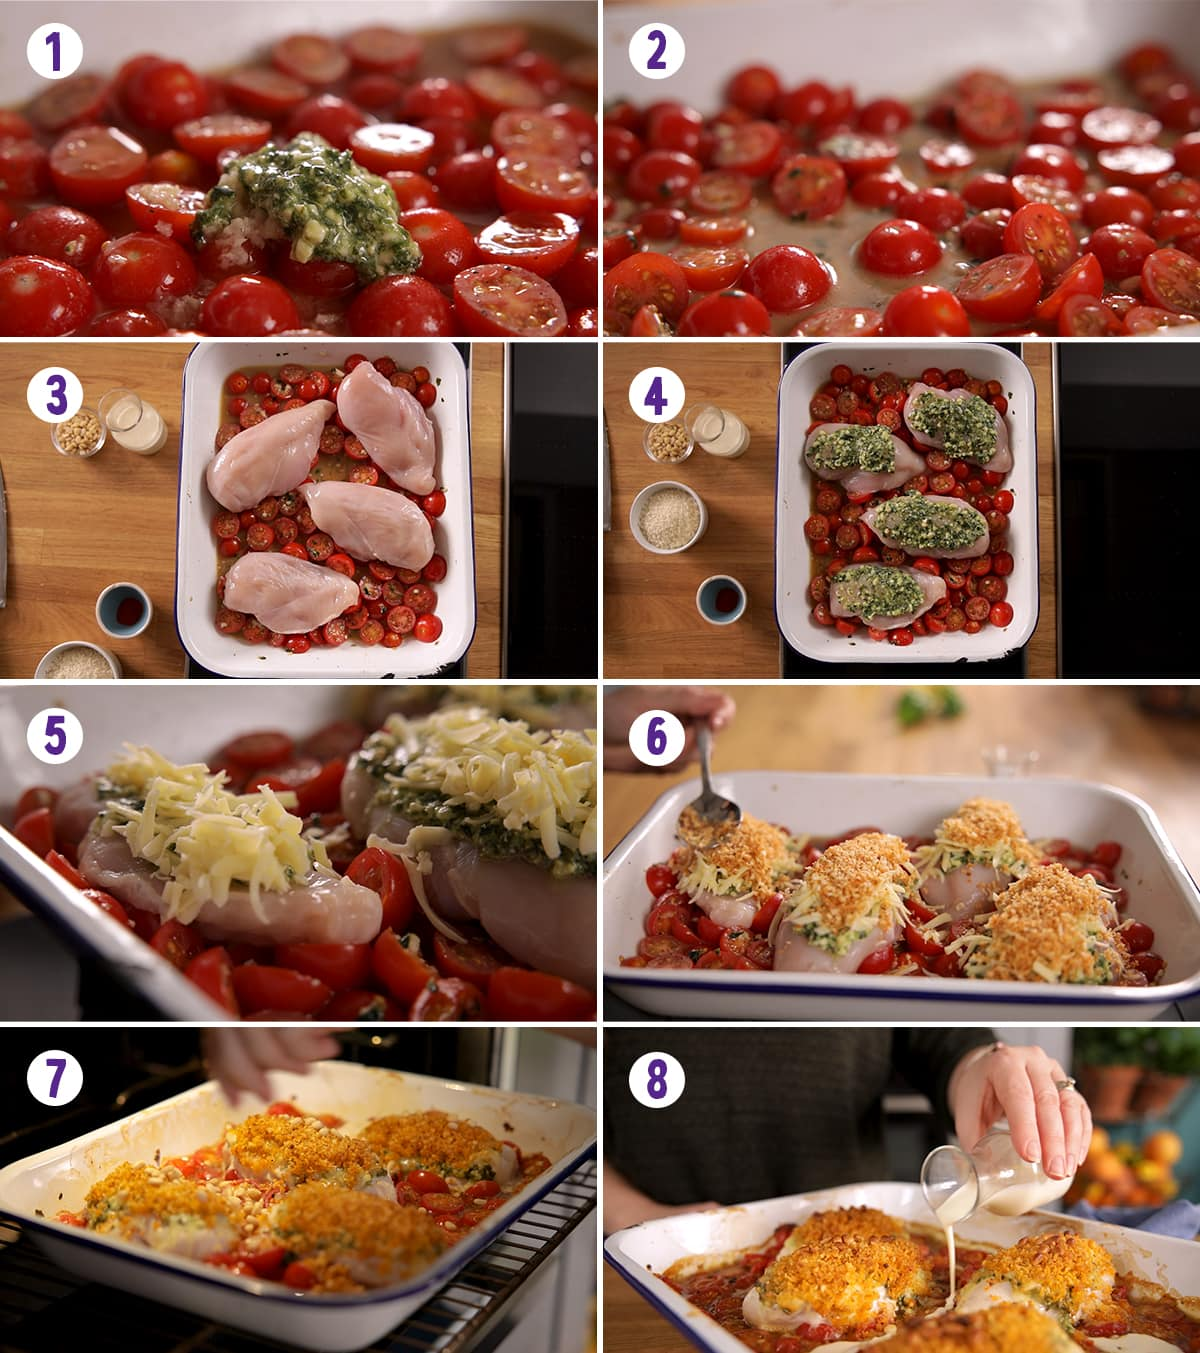 8 image collage showing how to make baked pesto chicken